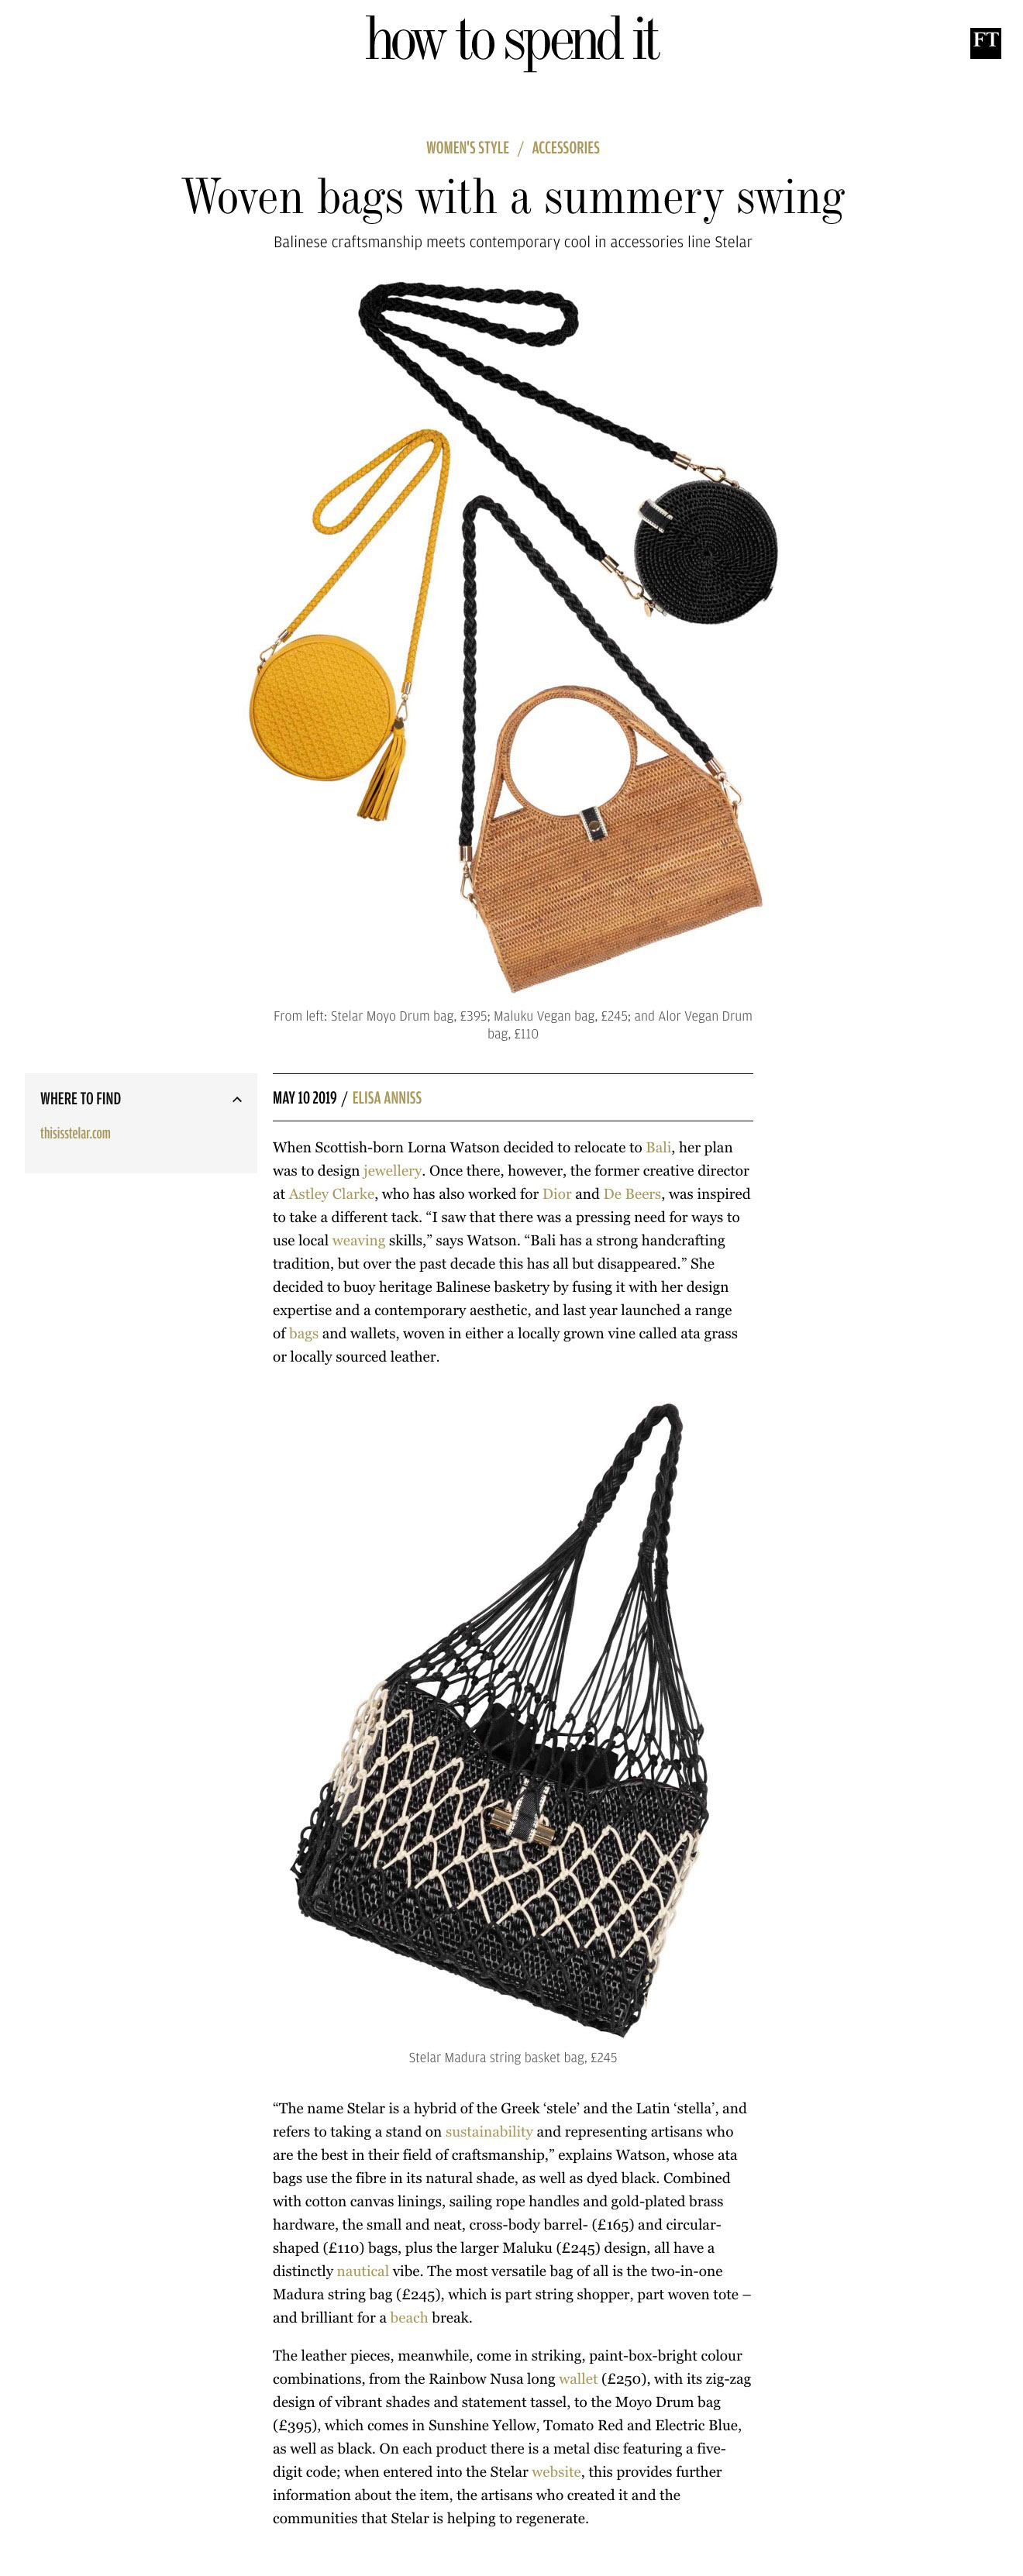 FireShot-Capture-053---Woven-bags-with-a-summery-swing---How_---https___howtospendit.ft.com_womens.jpg